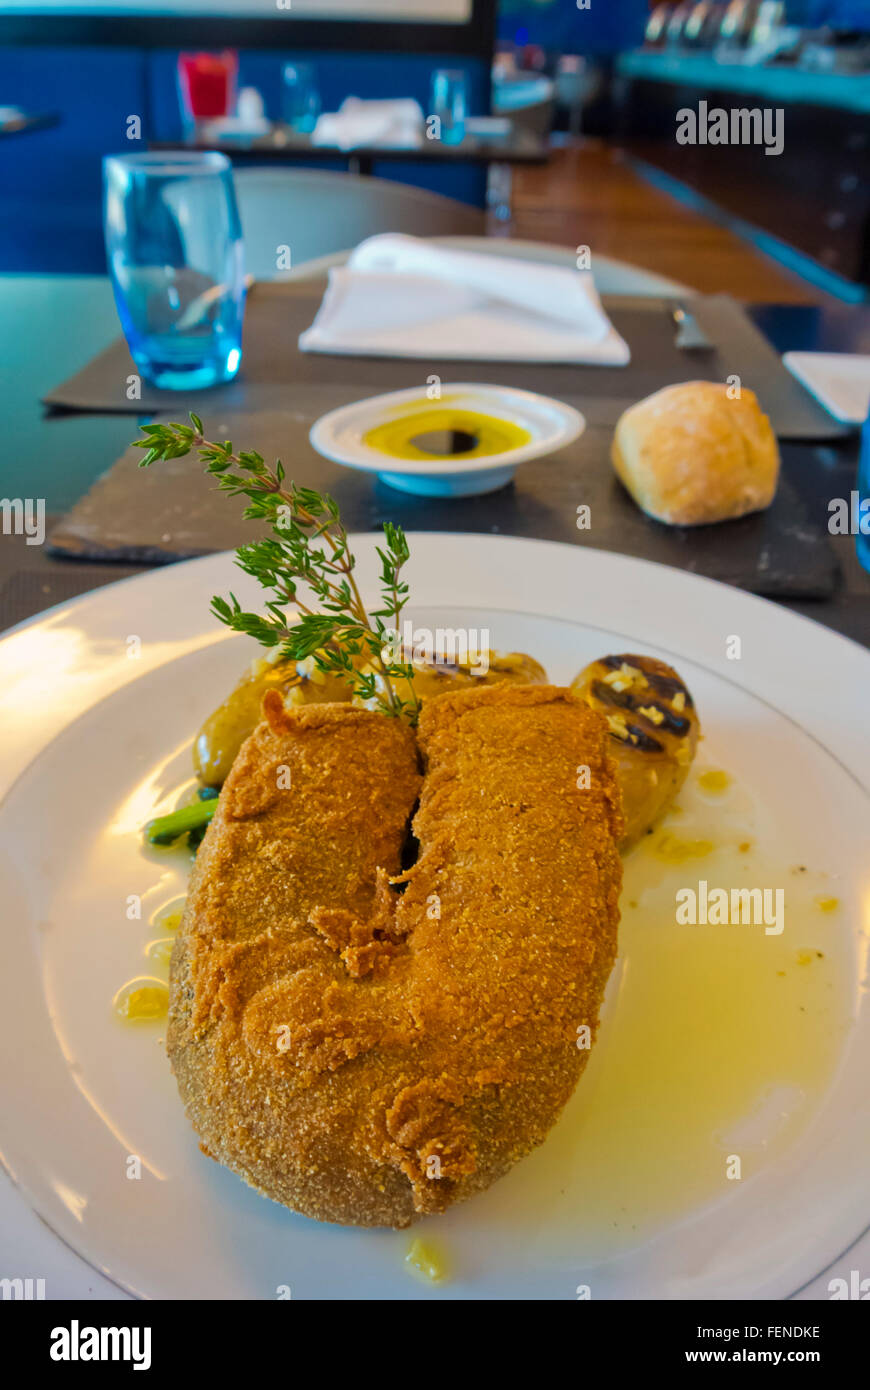 Breaded blood sausage in Azores style, Lisbon, Portugal - Stock Image